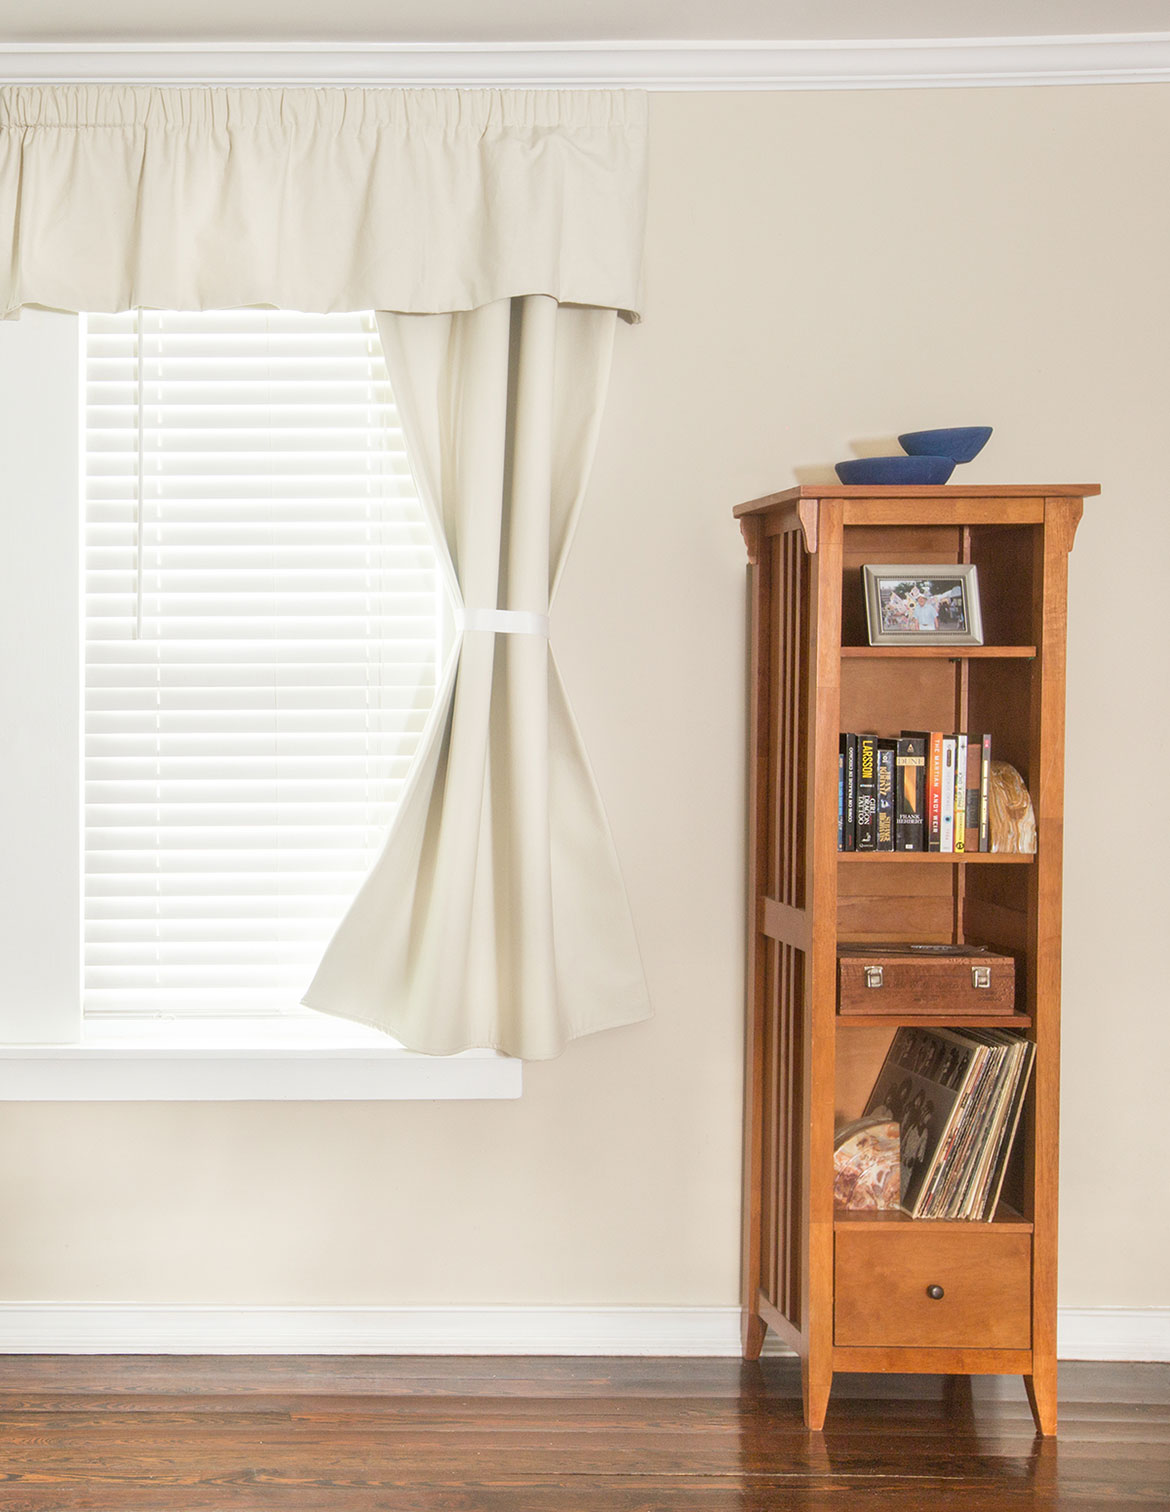 Retractable Sliding Single Panel Soundproof Curtain Shown in Bedroom on Window - AcoustiTrac